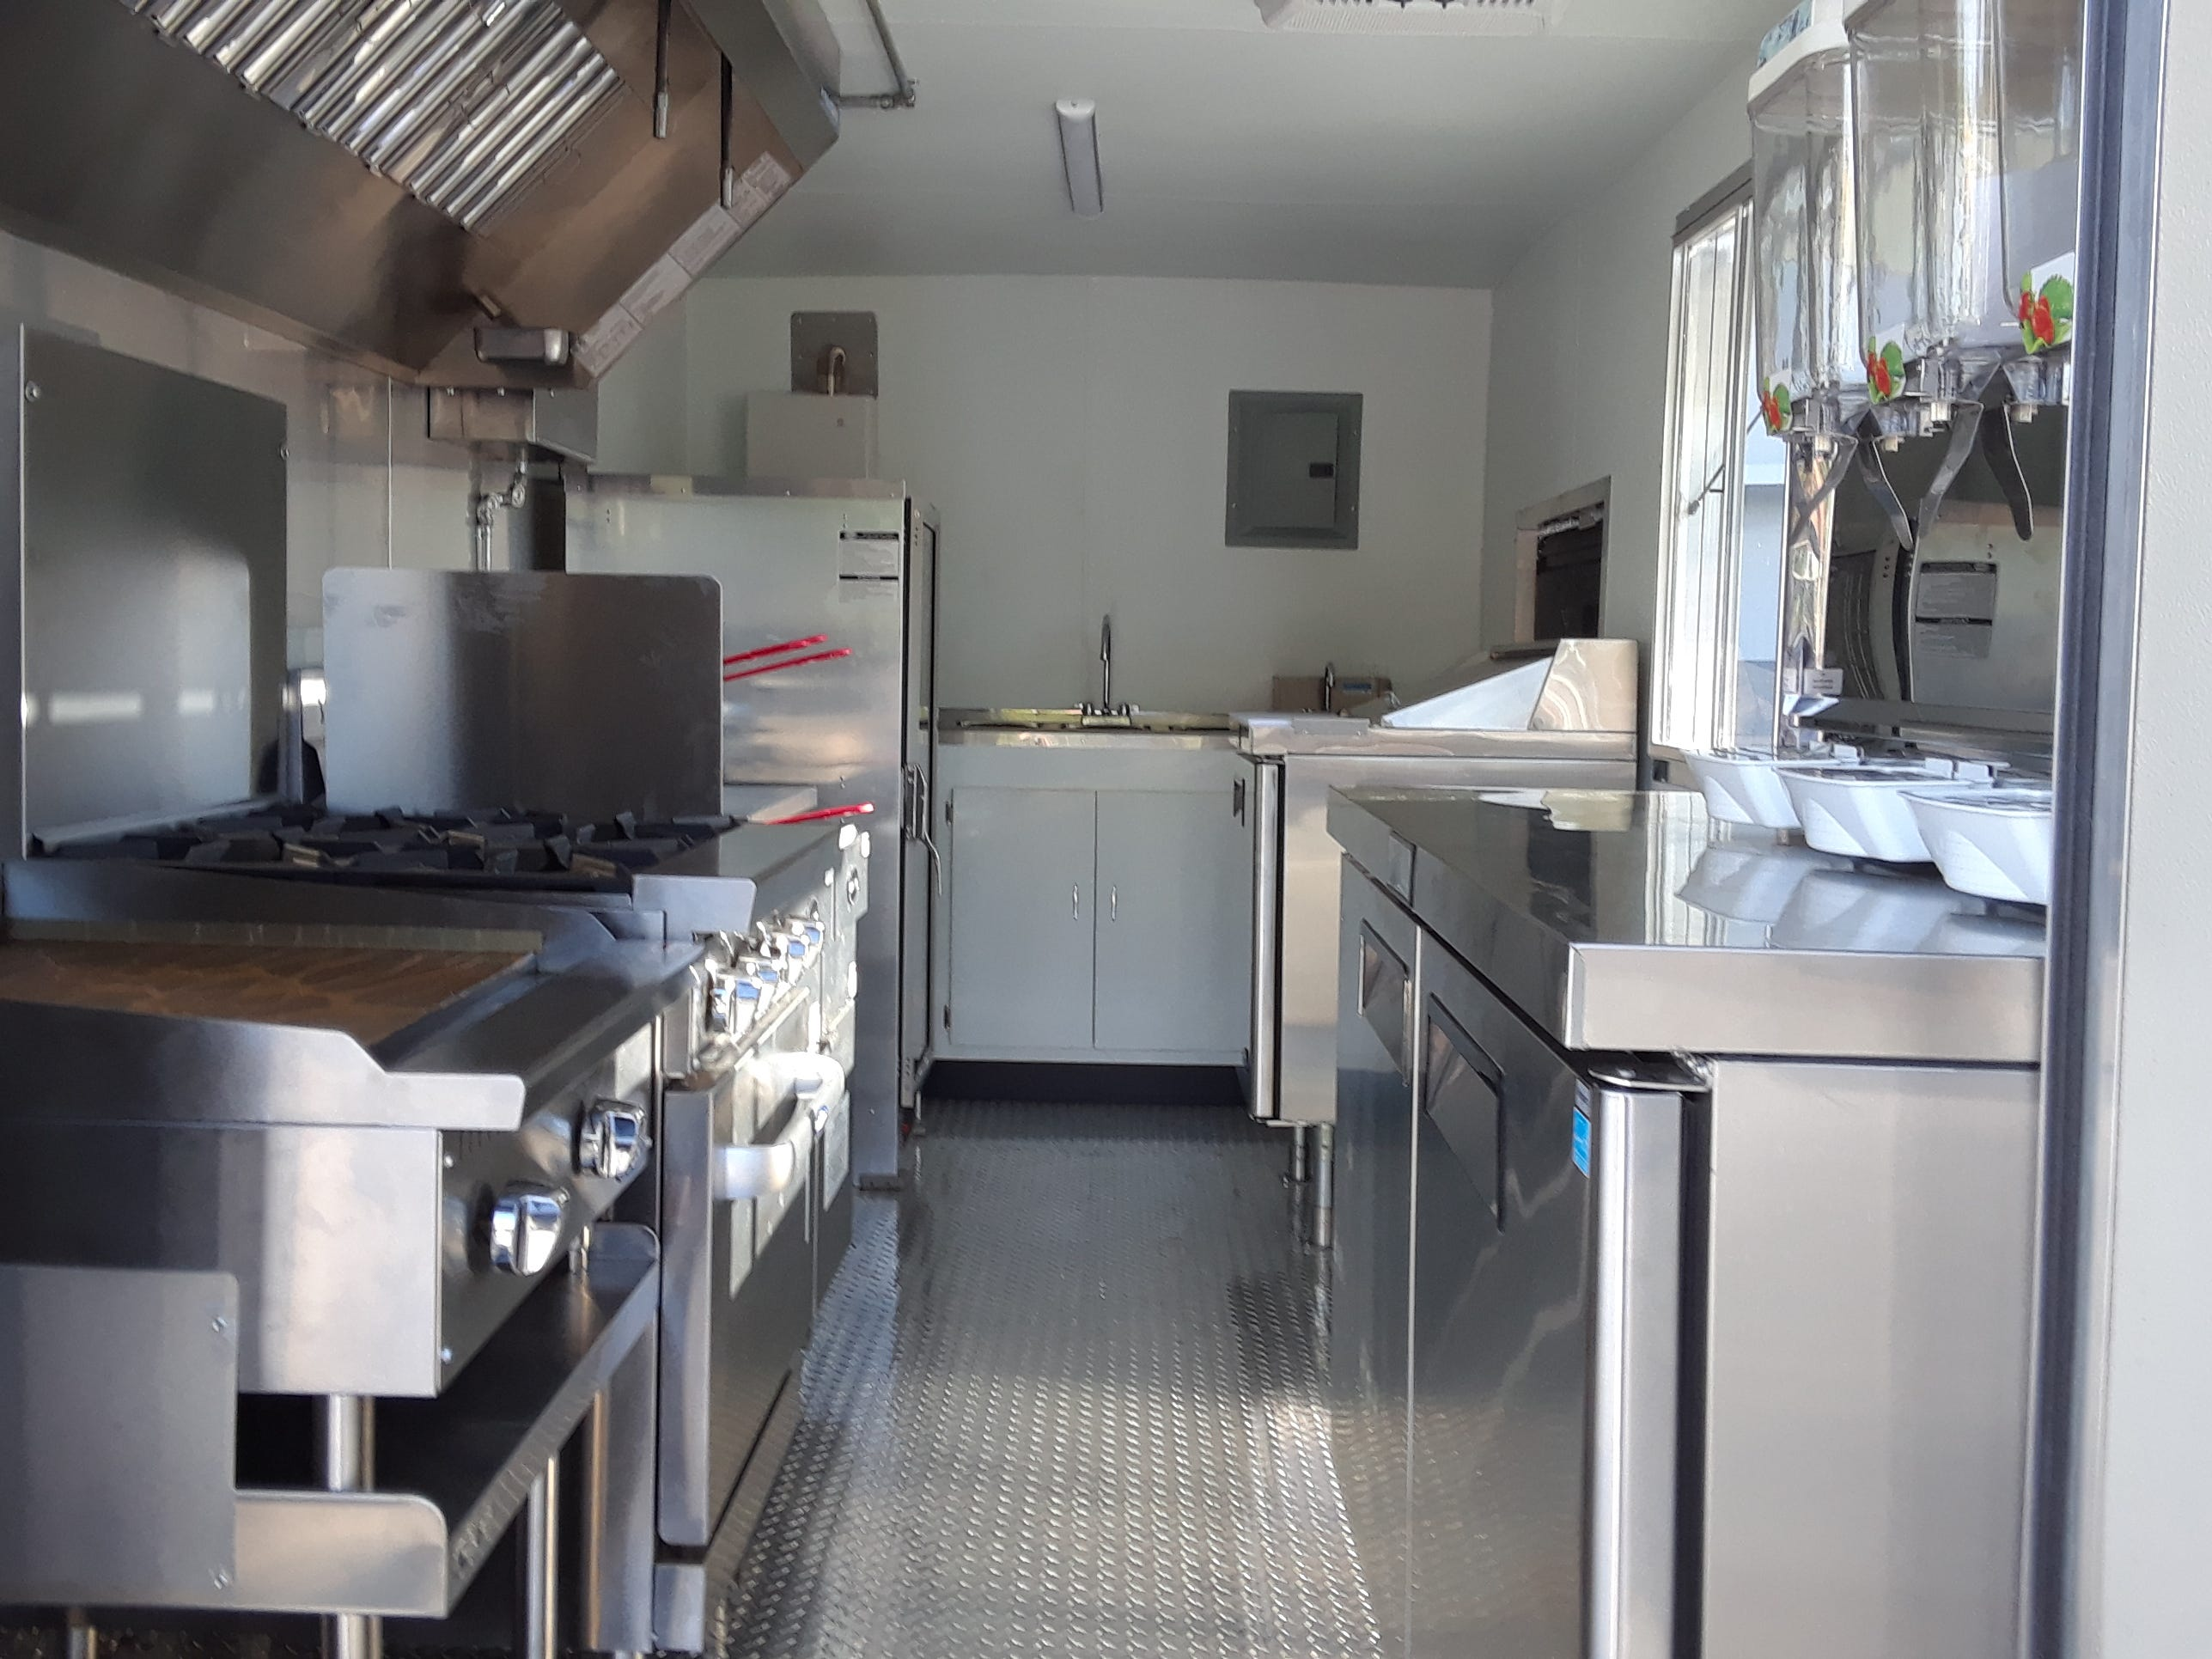 The inside of the Schnitzel Express food truck is spotless and tidy, with all the equipment needed for a full-service restaurant.